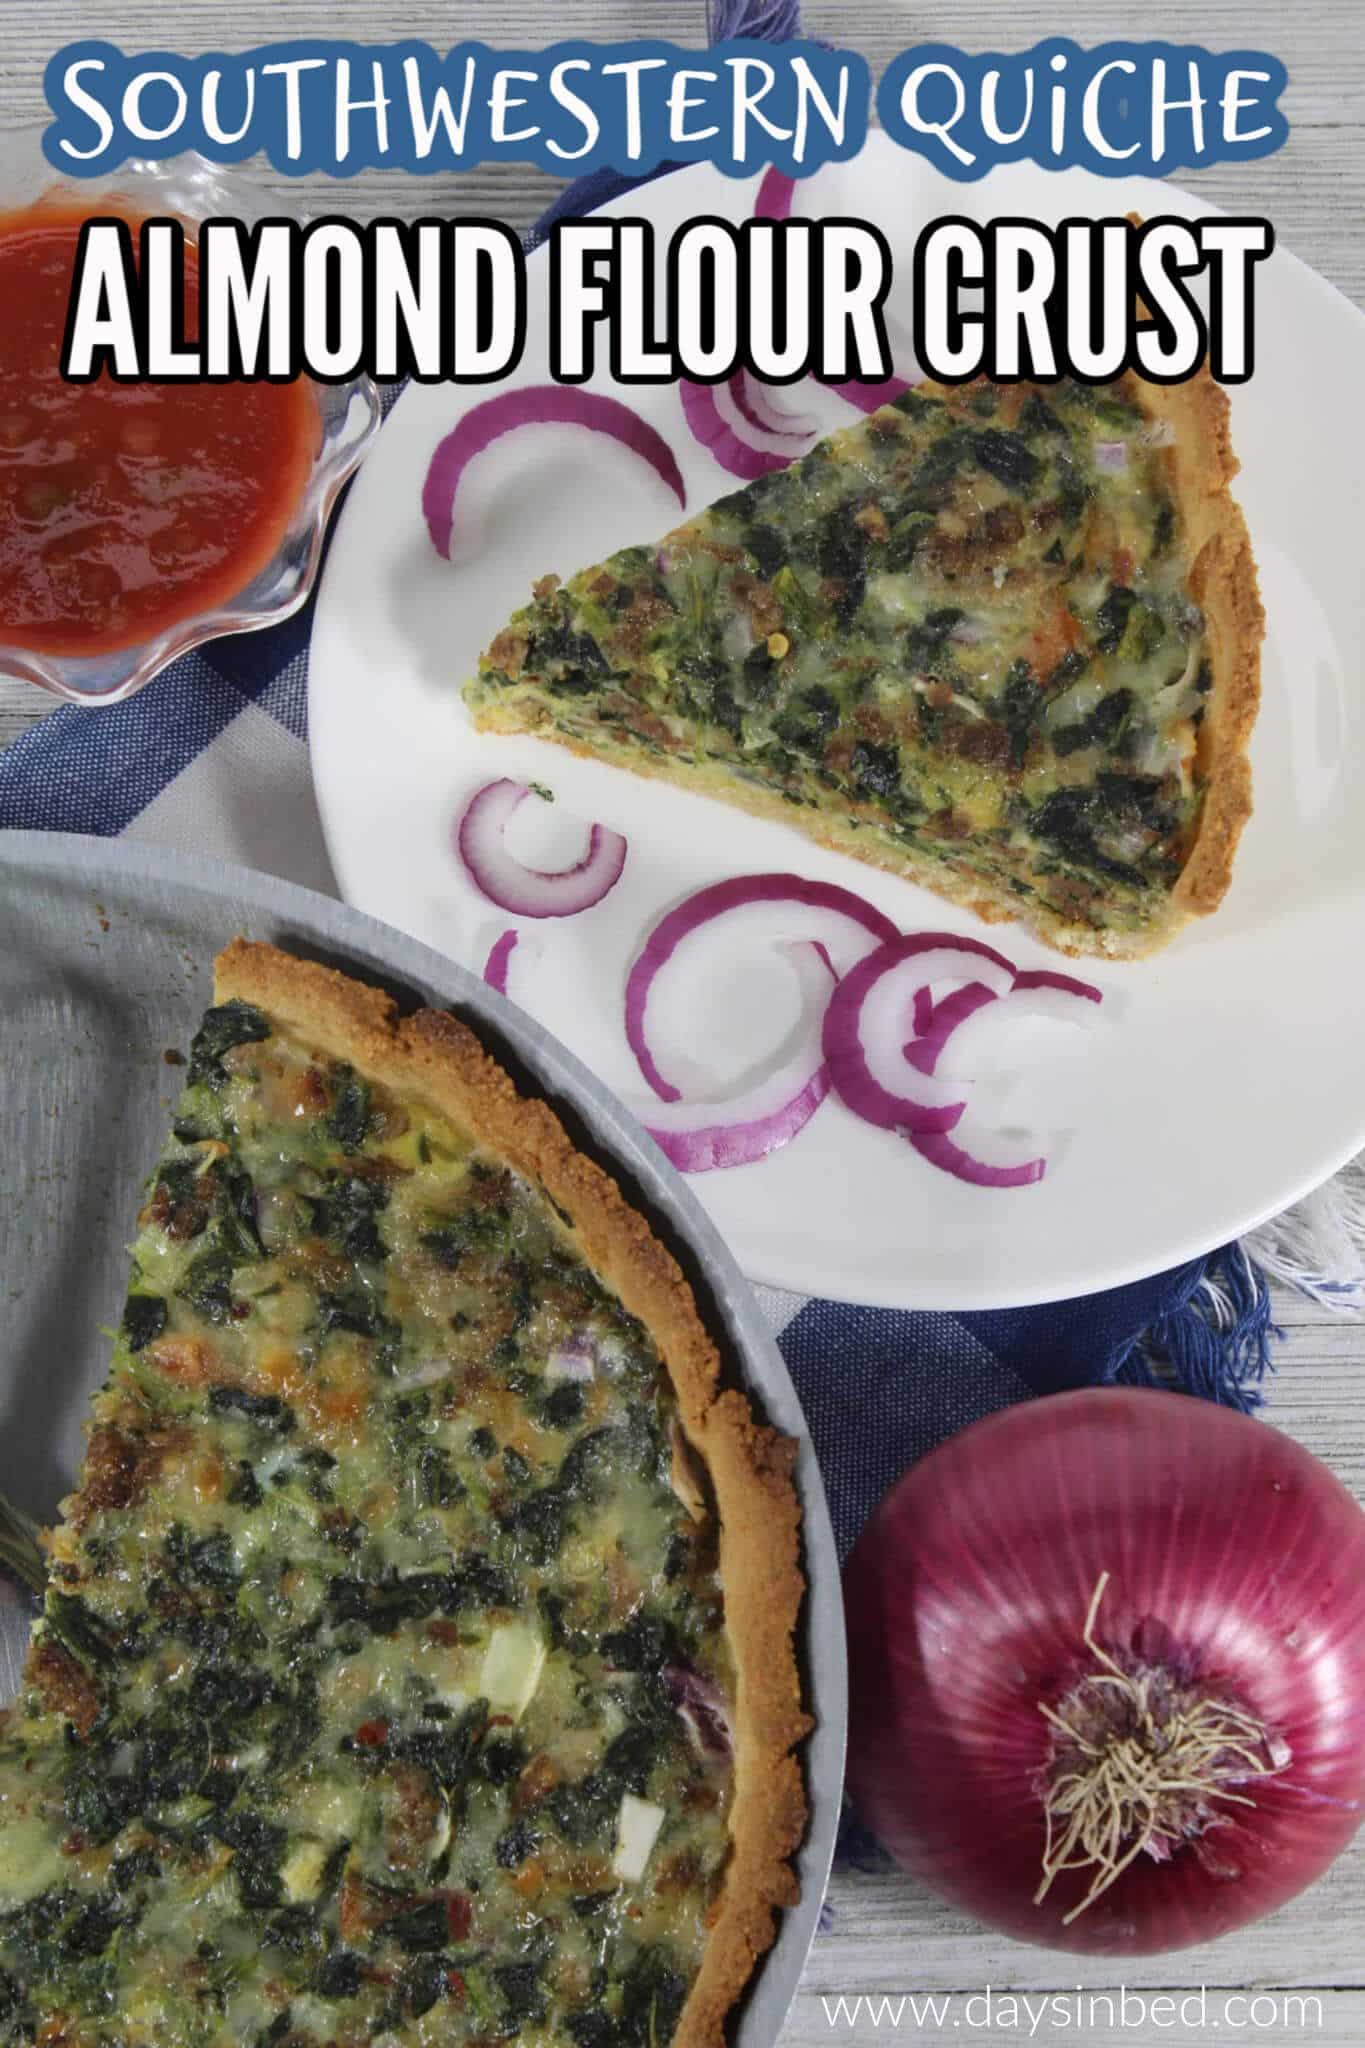 low carb southwestern quiche with almond flour pastry crust